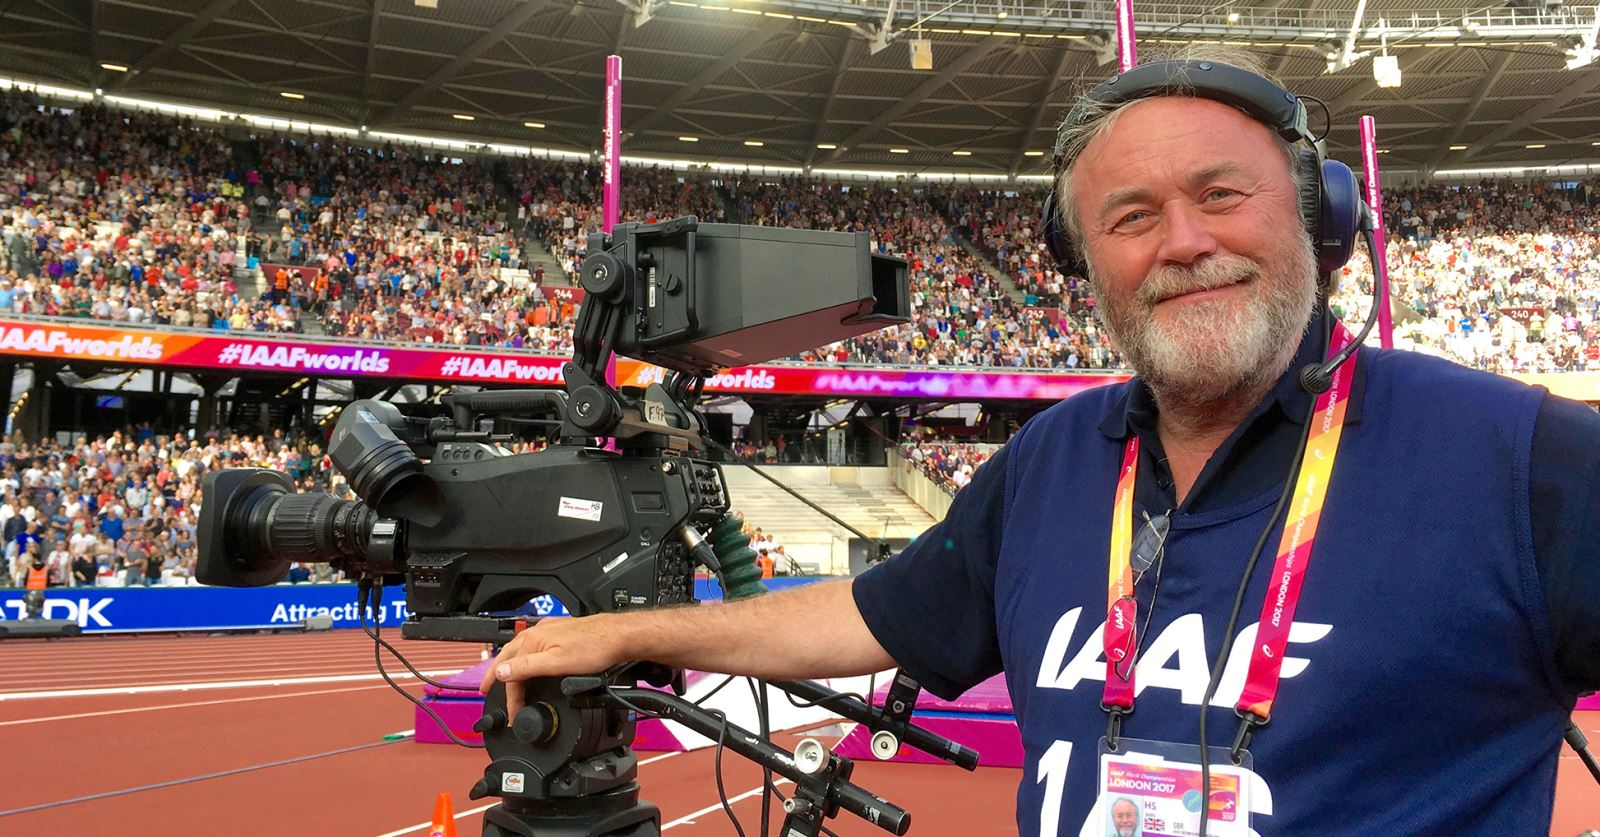 Former GTC Chairman Graeme McAlpine working on the IAFF World Championships 2017 in the Olympic Stadium